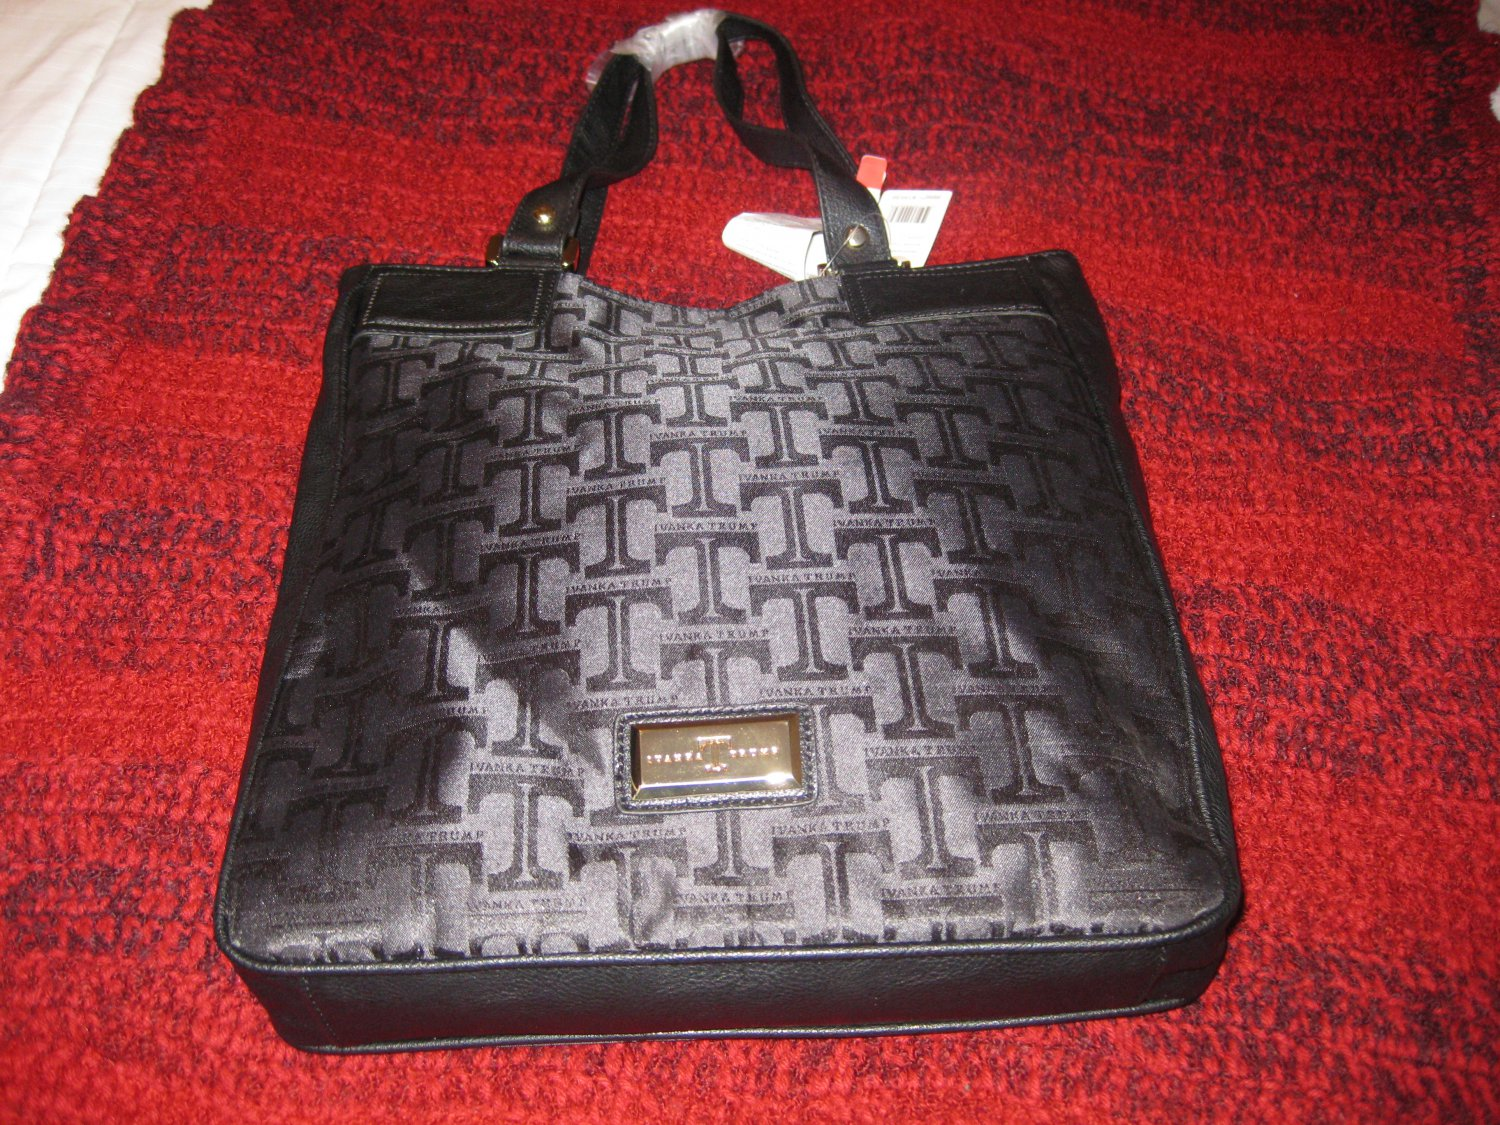 Sold*** Ivanka Trump Handbag Ava Shopper *** Sold***